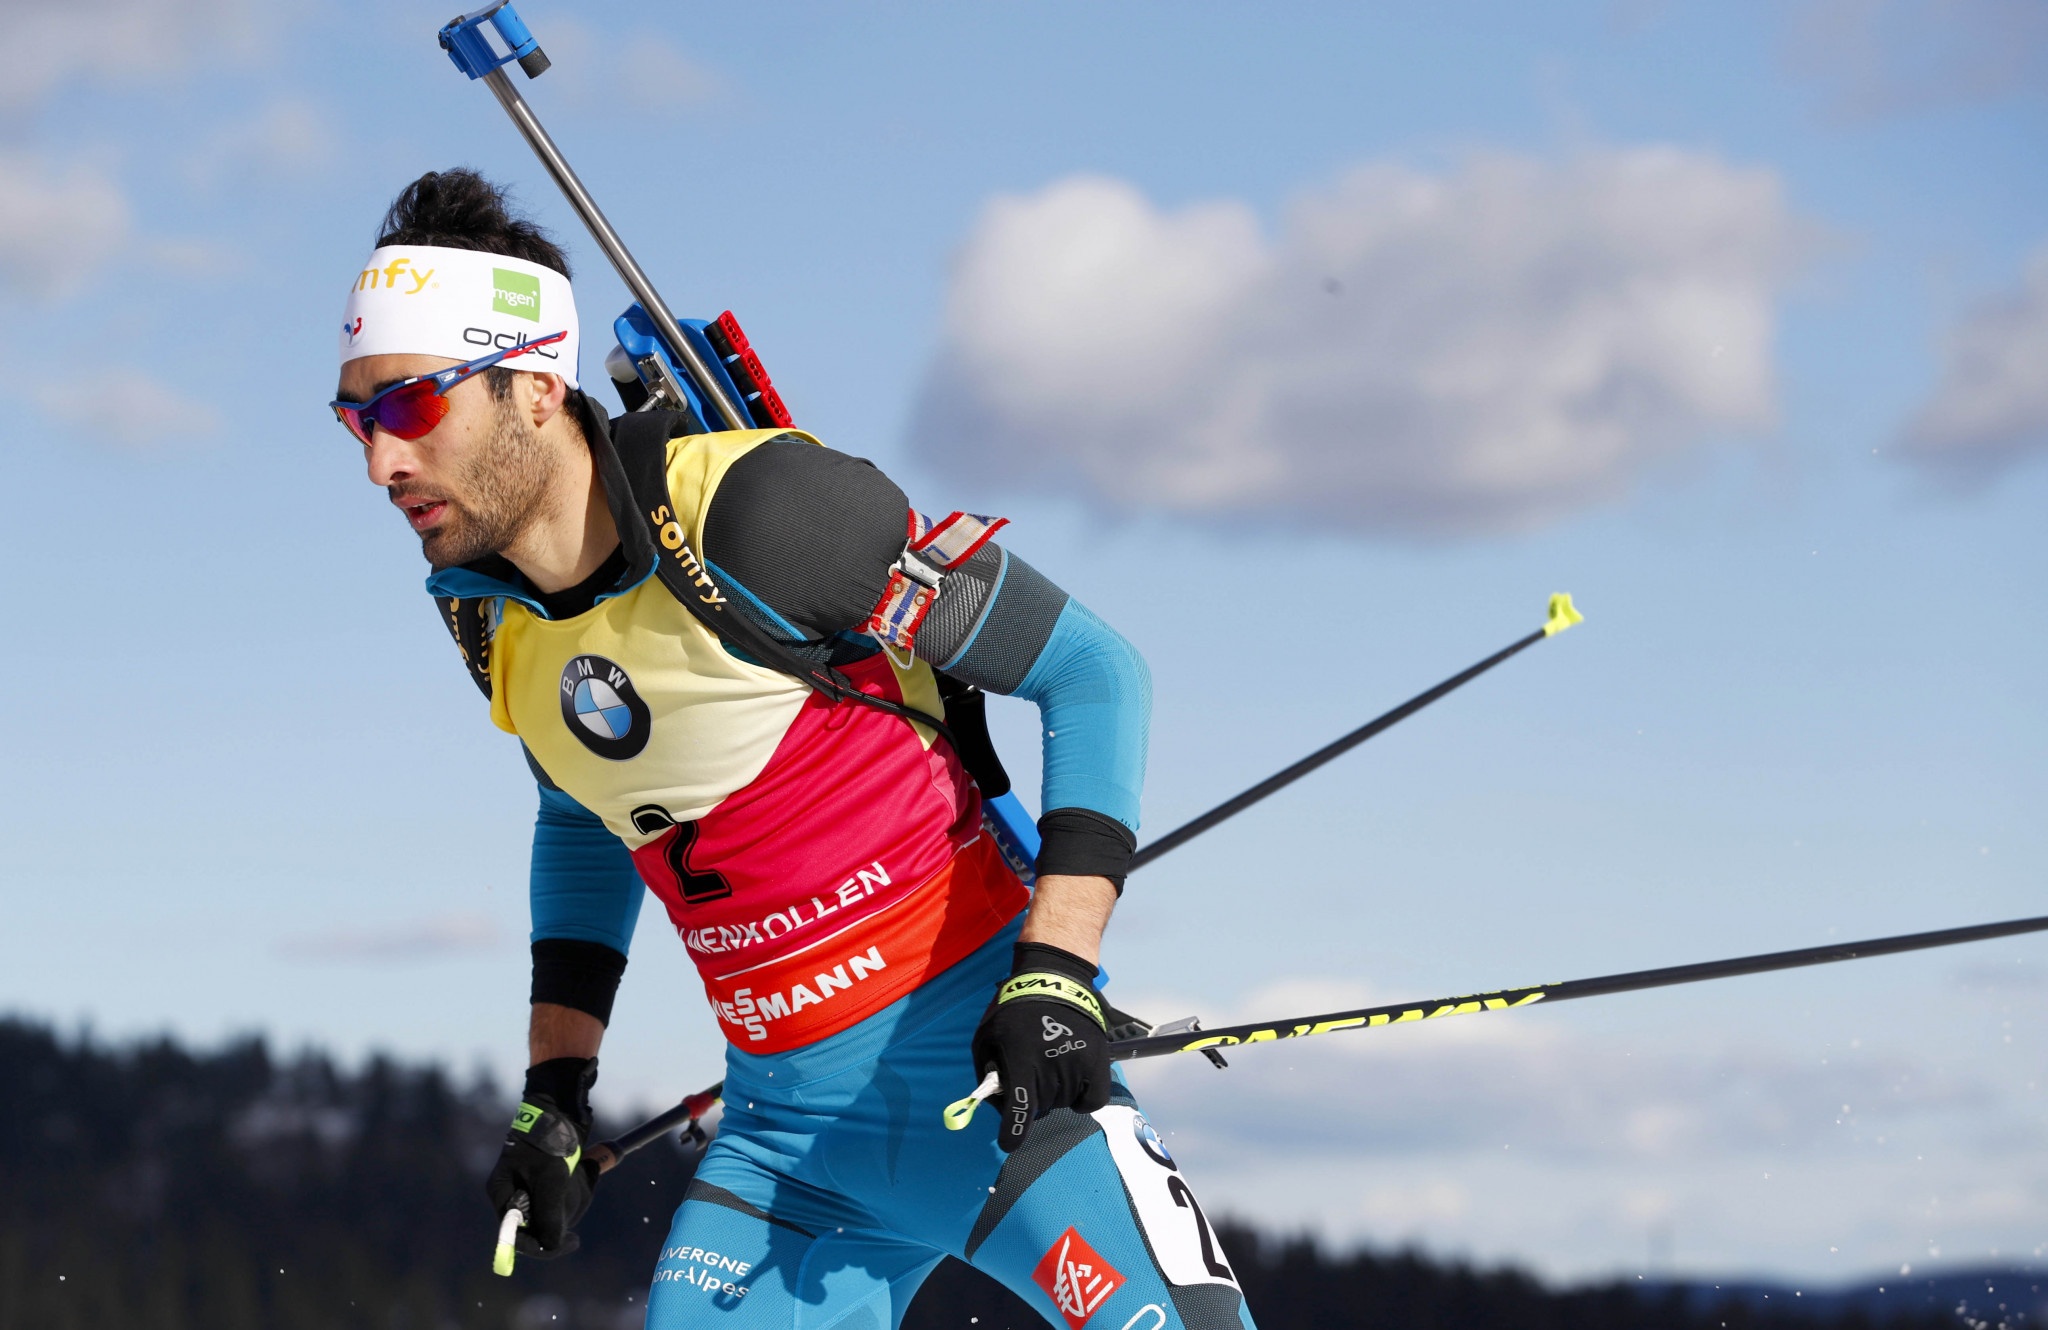 Martin Fourcade has been named as France's flag bearer at the Pyeongchang 2018 Winter Olympic Games ©Getty Images